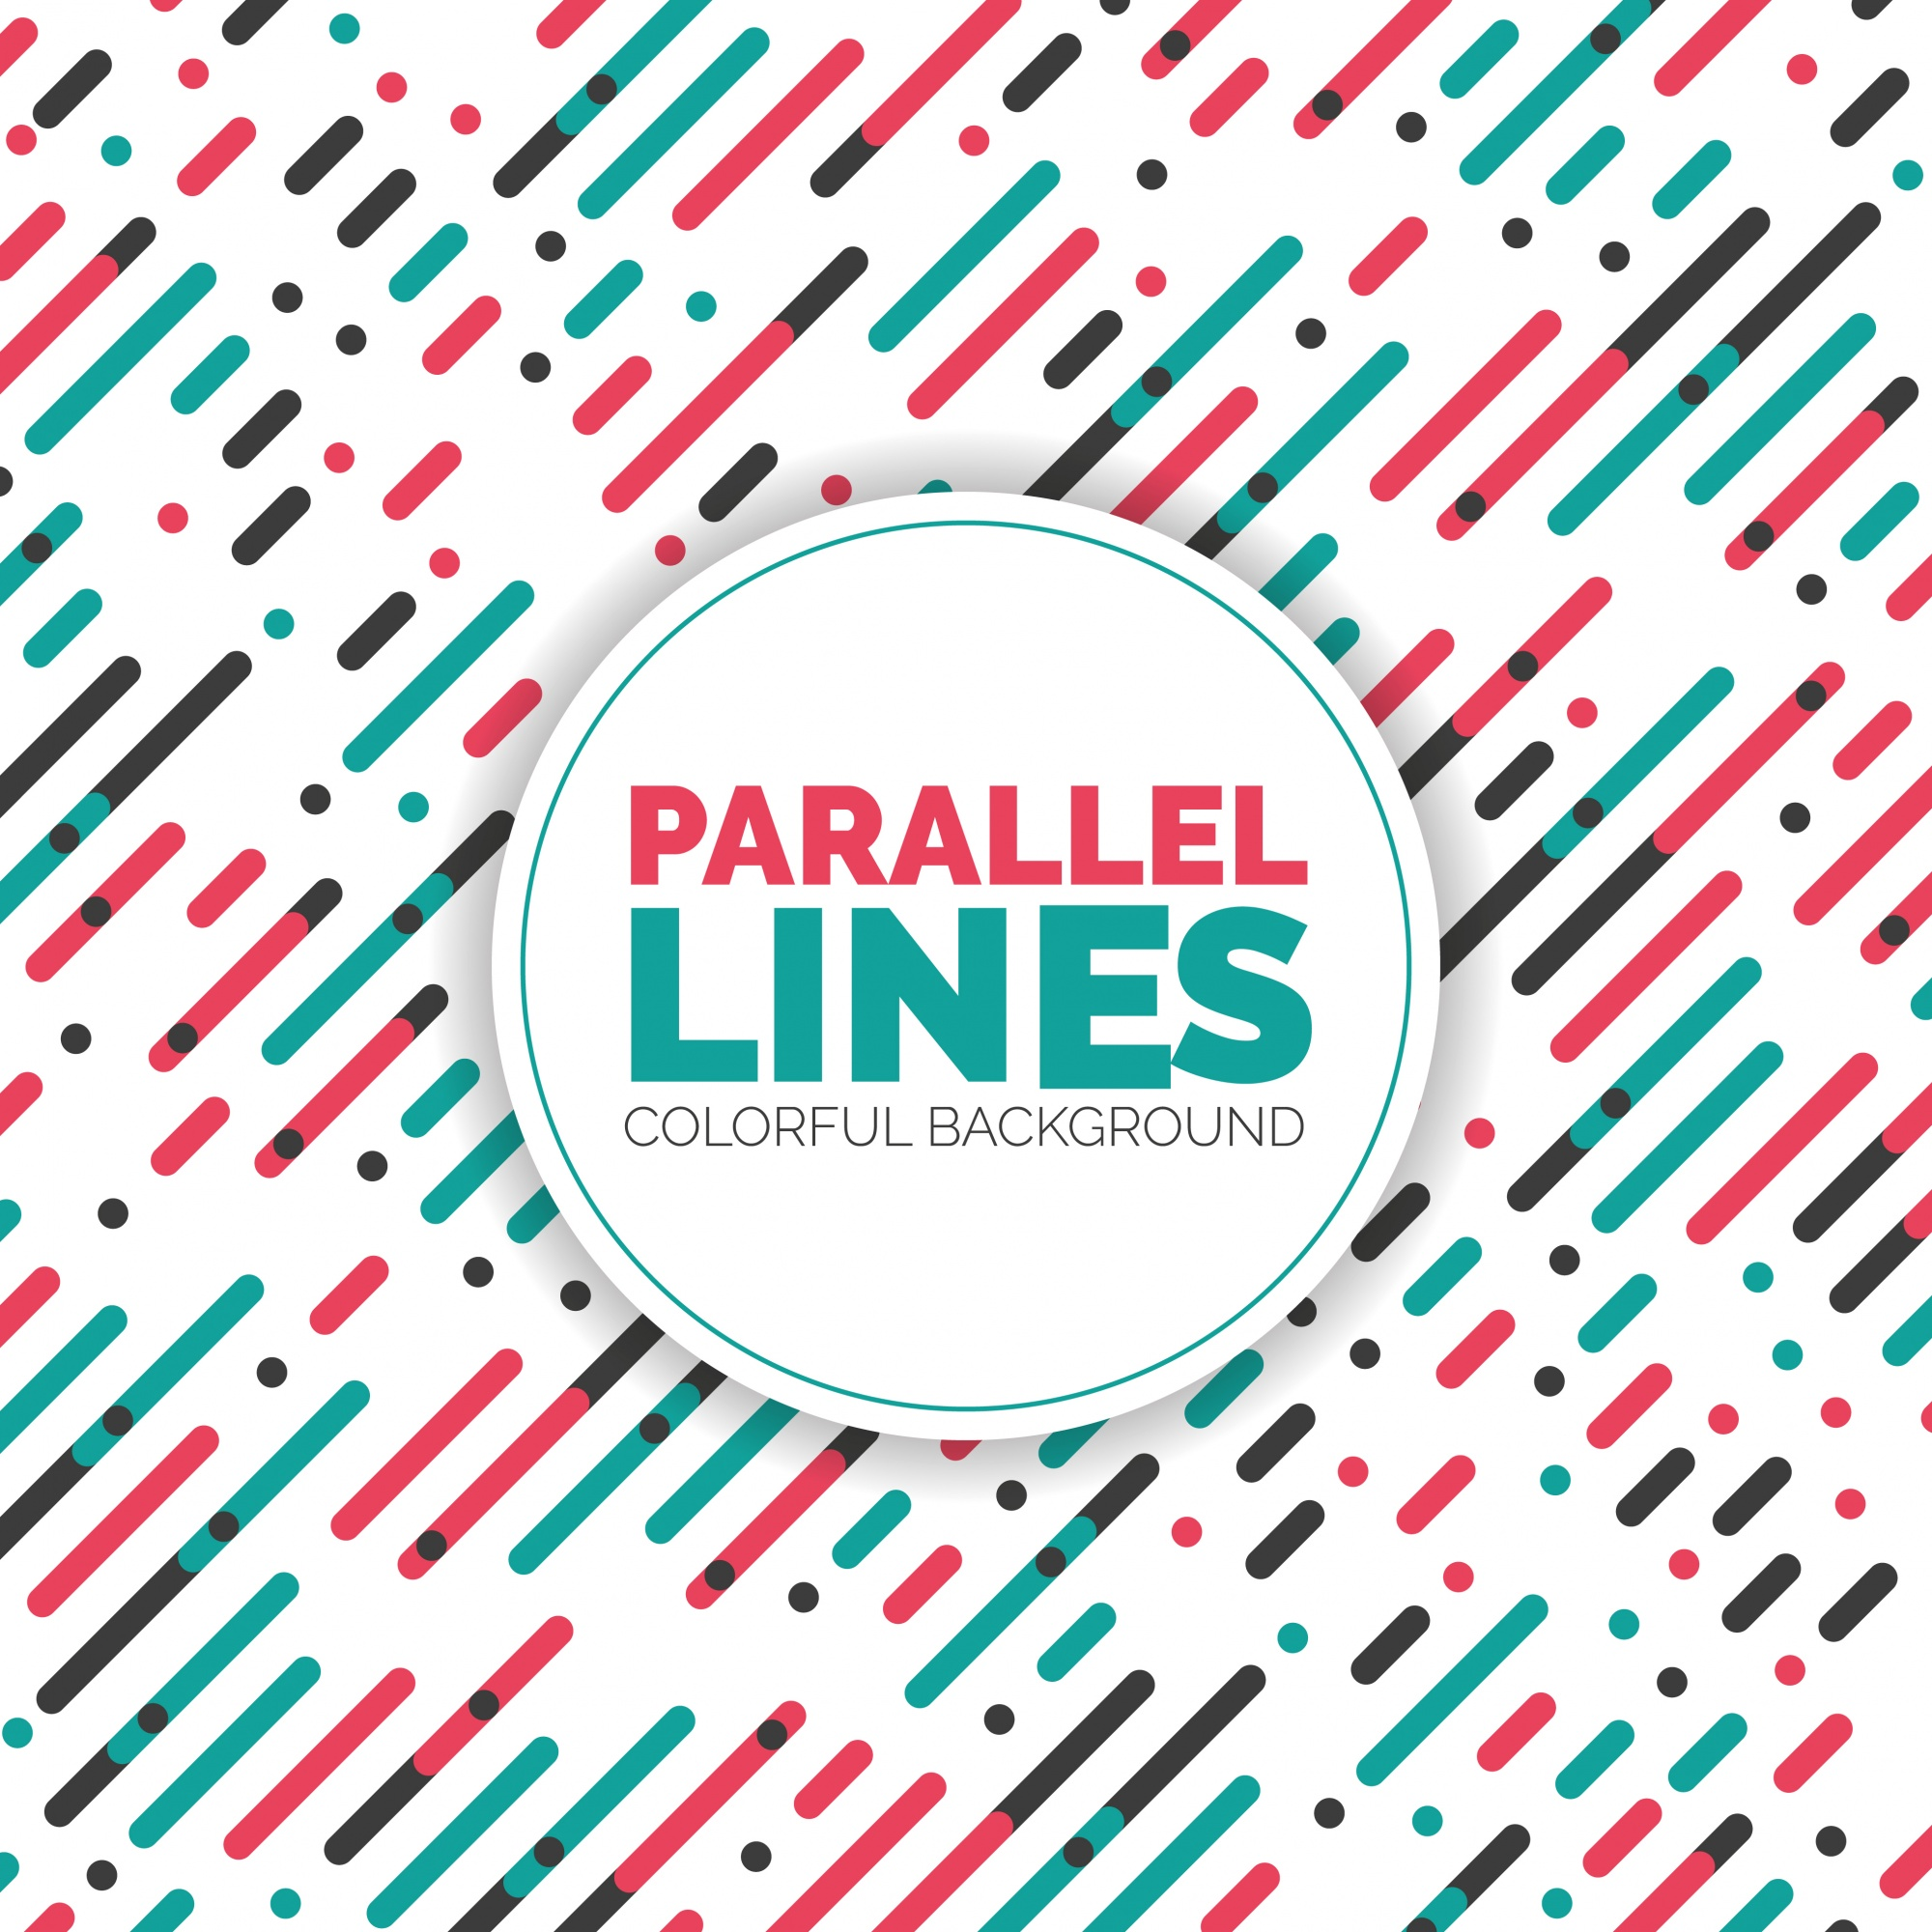 Parallel Diagonal Overlapping Color Lines Pattern Background